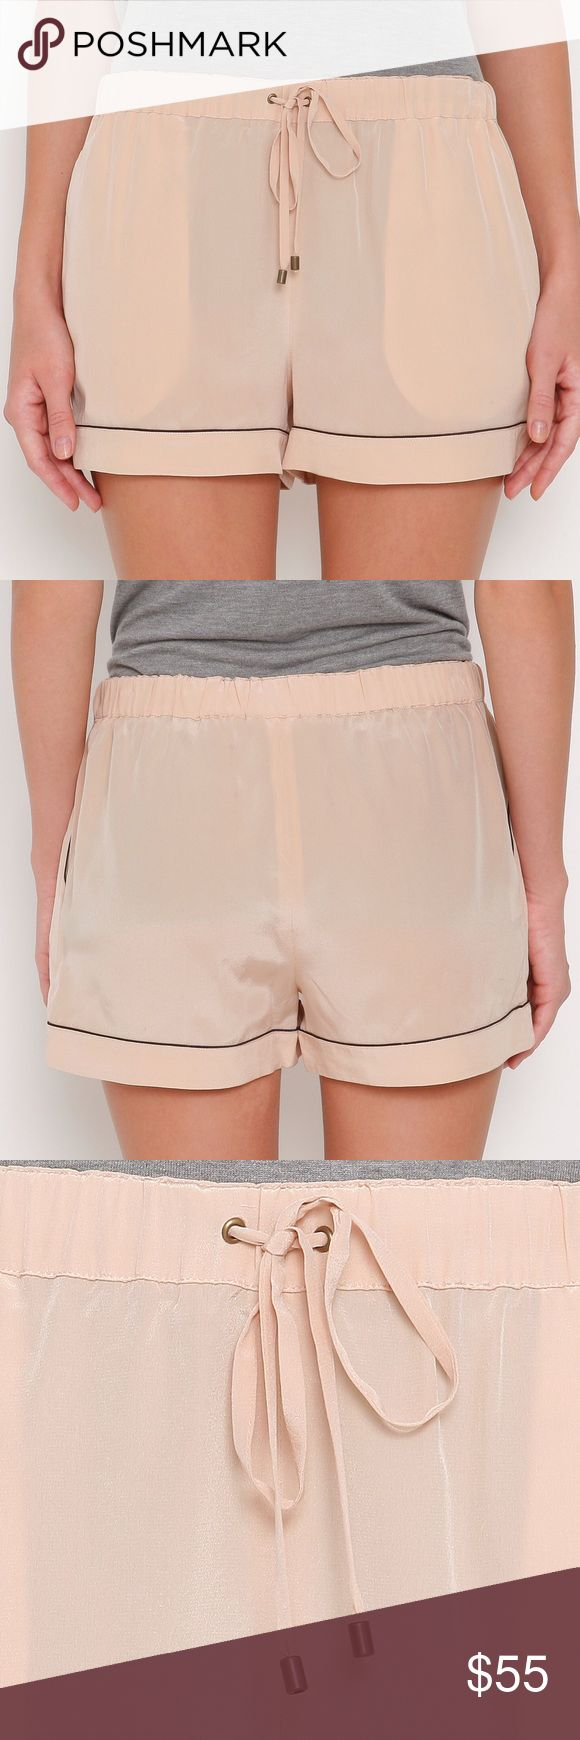 NWT 10 Crosby Derek Lam Nude Shorts Large New with tags 10 Crosby Derek Lam Nude Shorts - Drawstring - Large - Small spot shown in picture - may wash out - Size Large 10 Crosby Derek Lam Shorts